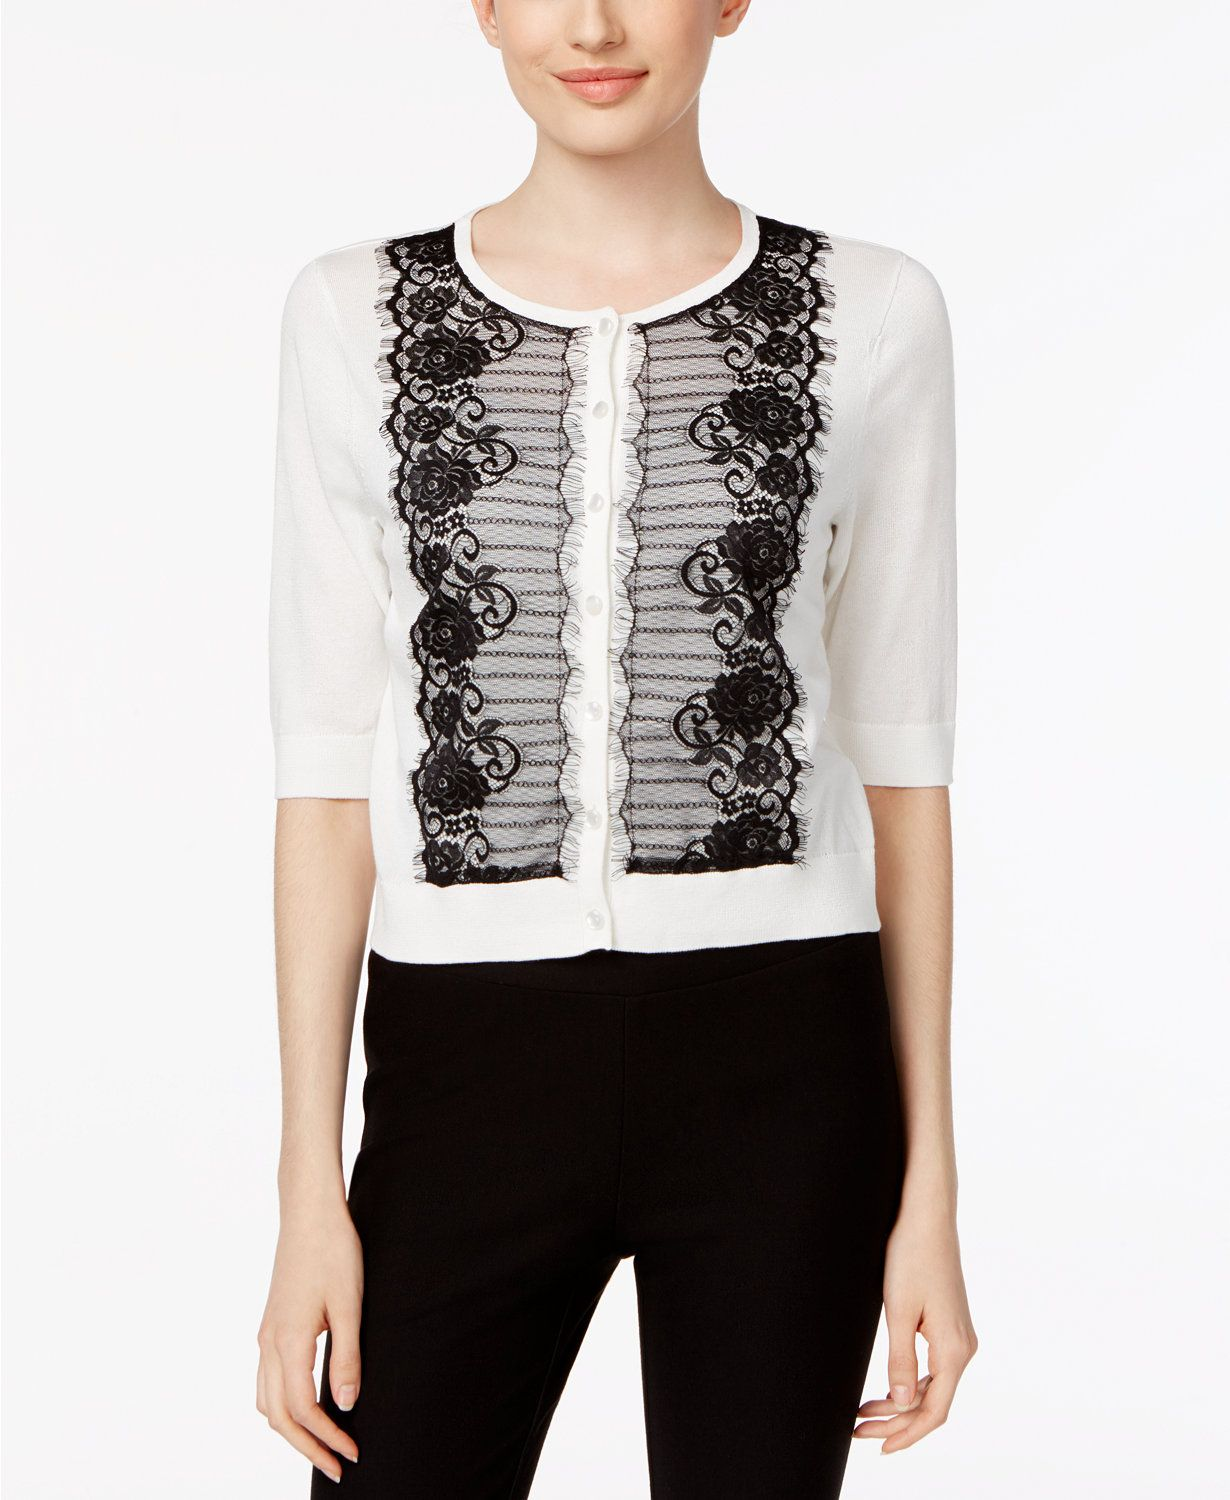 August Silk Contrast Lace-Trim Cardigan | macys.com | My Wish List ...